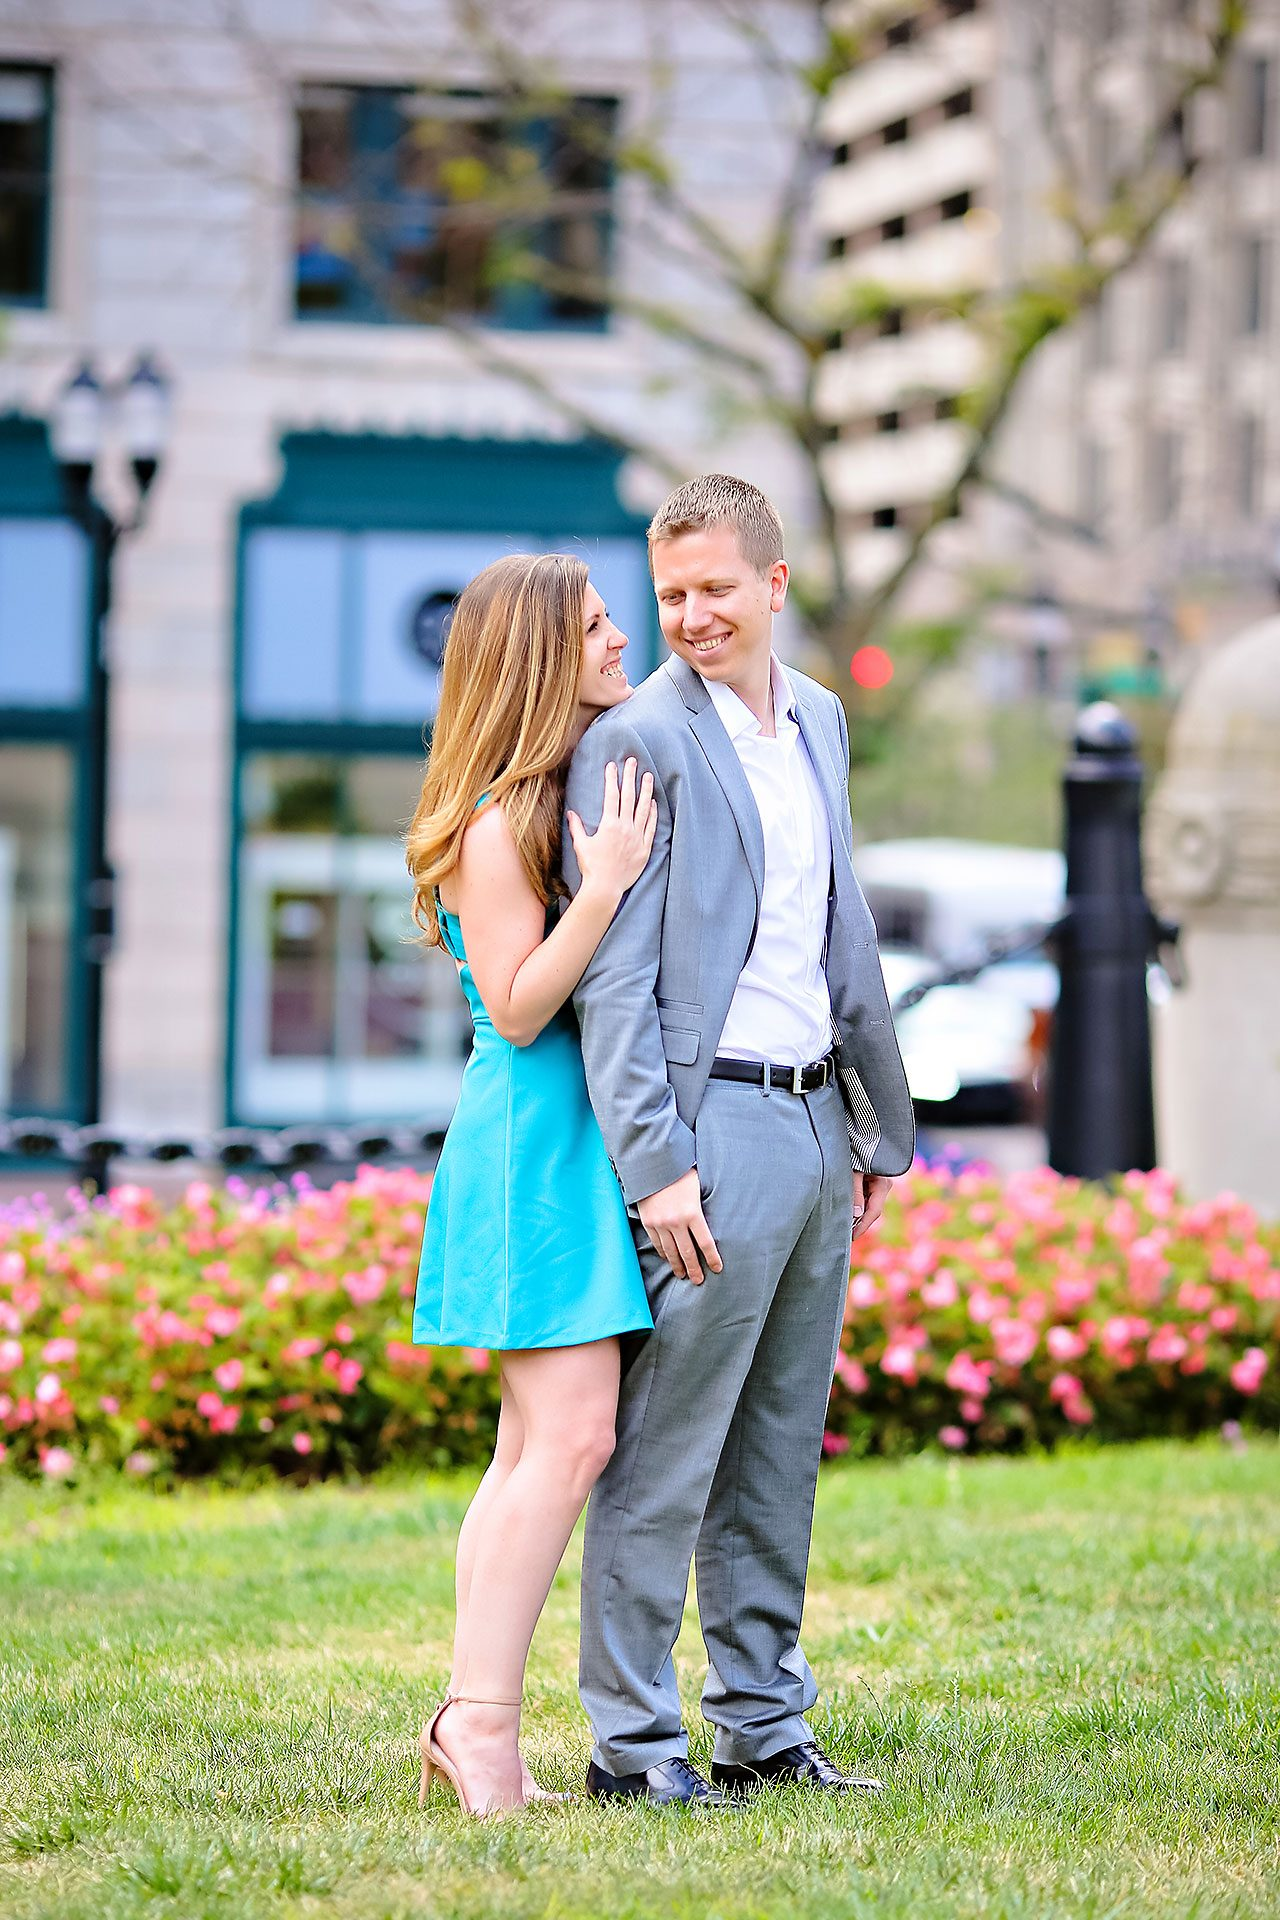 Chelsea Jeff Downtown Indy Engagement Session 052